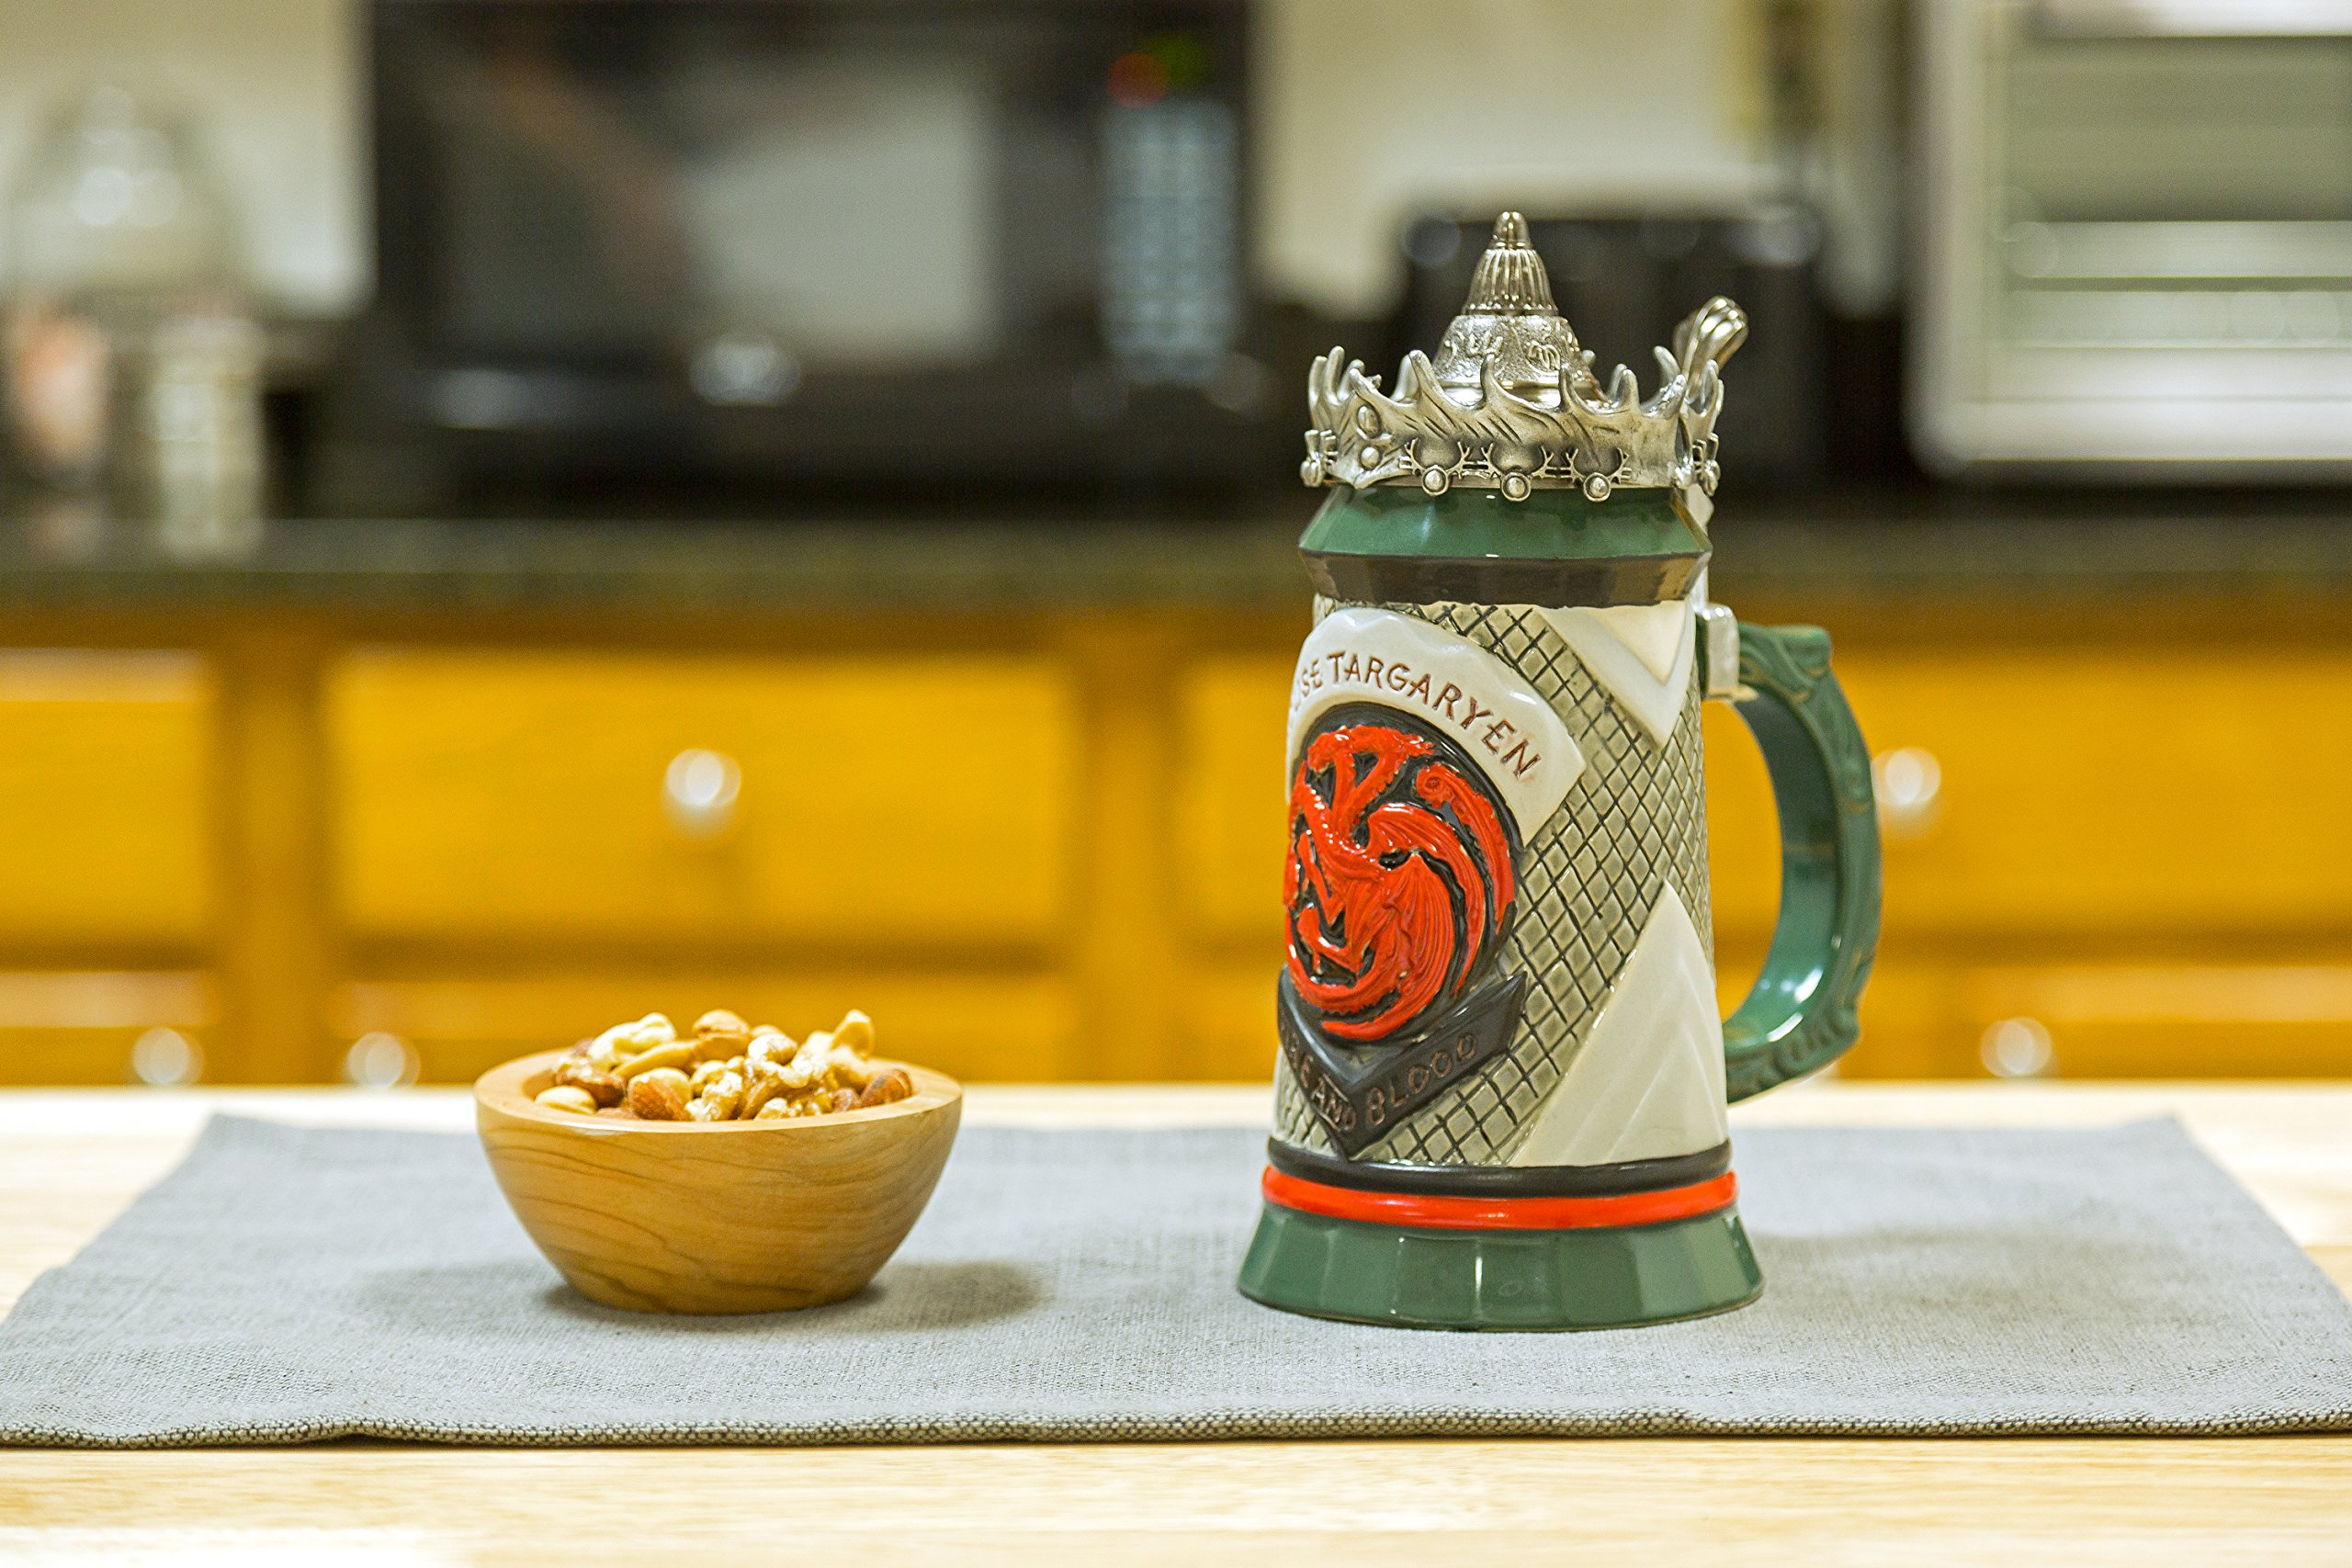 Game of Thrones House Targaryen Stein - 22 Oz Ceramic Base with Pewter Baratheon Crown Top by Game of Thrones (Image #7)